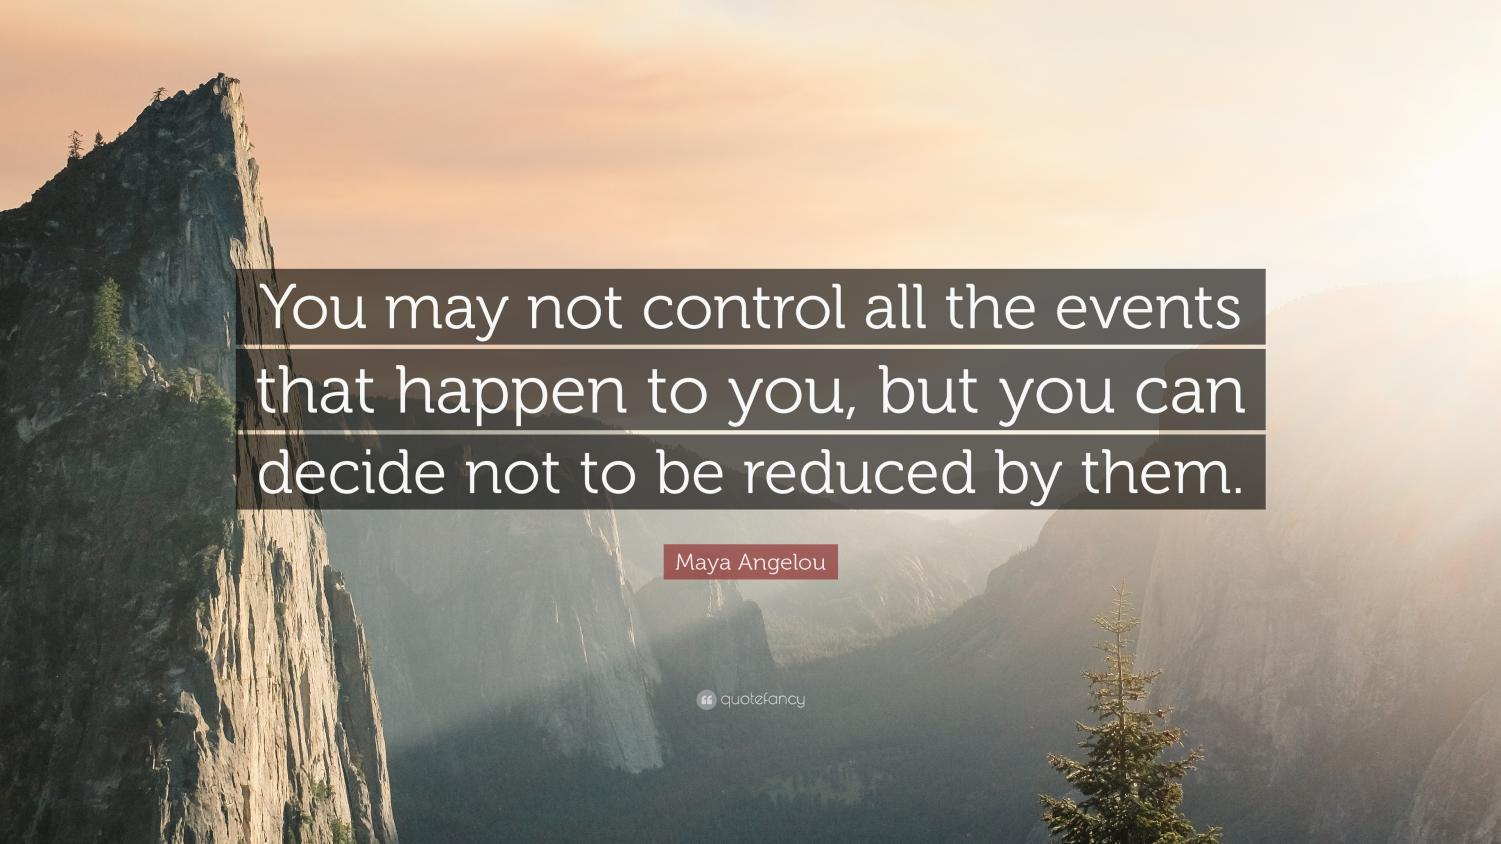 Picture Credit-https://quotefancy.com/quote/758277/Maya-Angelou-You-may-not-control-all-the-events-that-happen-to-you-but-you-can-decide-not